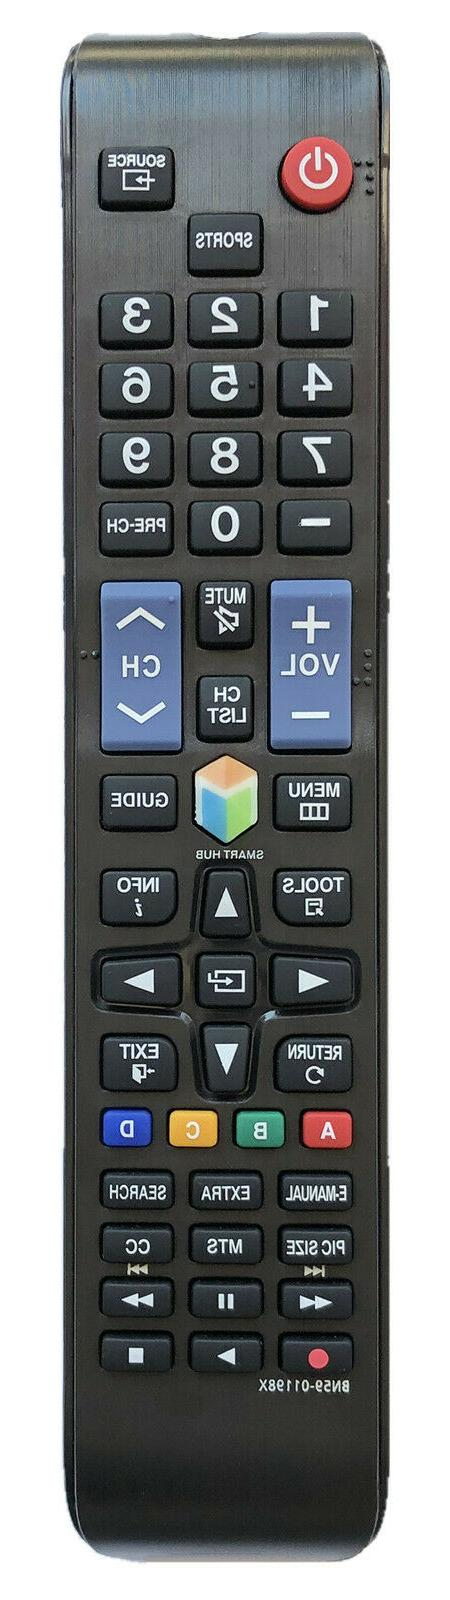 new remote bn59 01198x bn5901198x for samsung